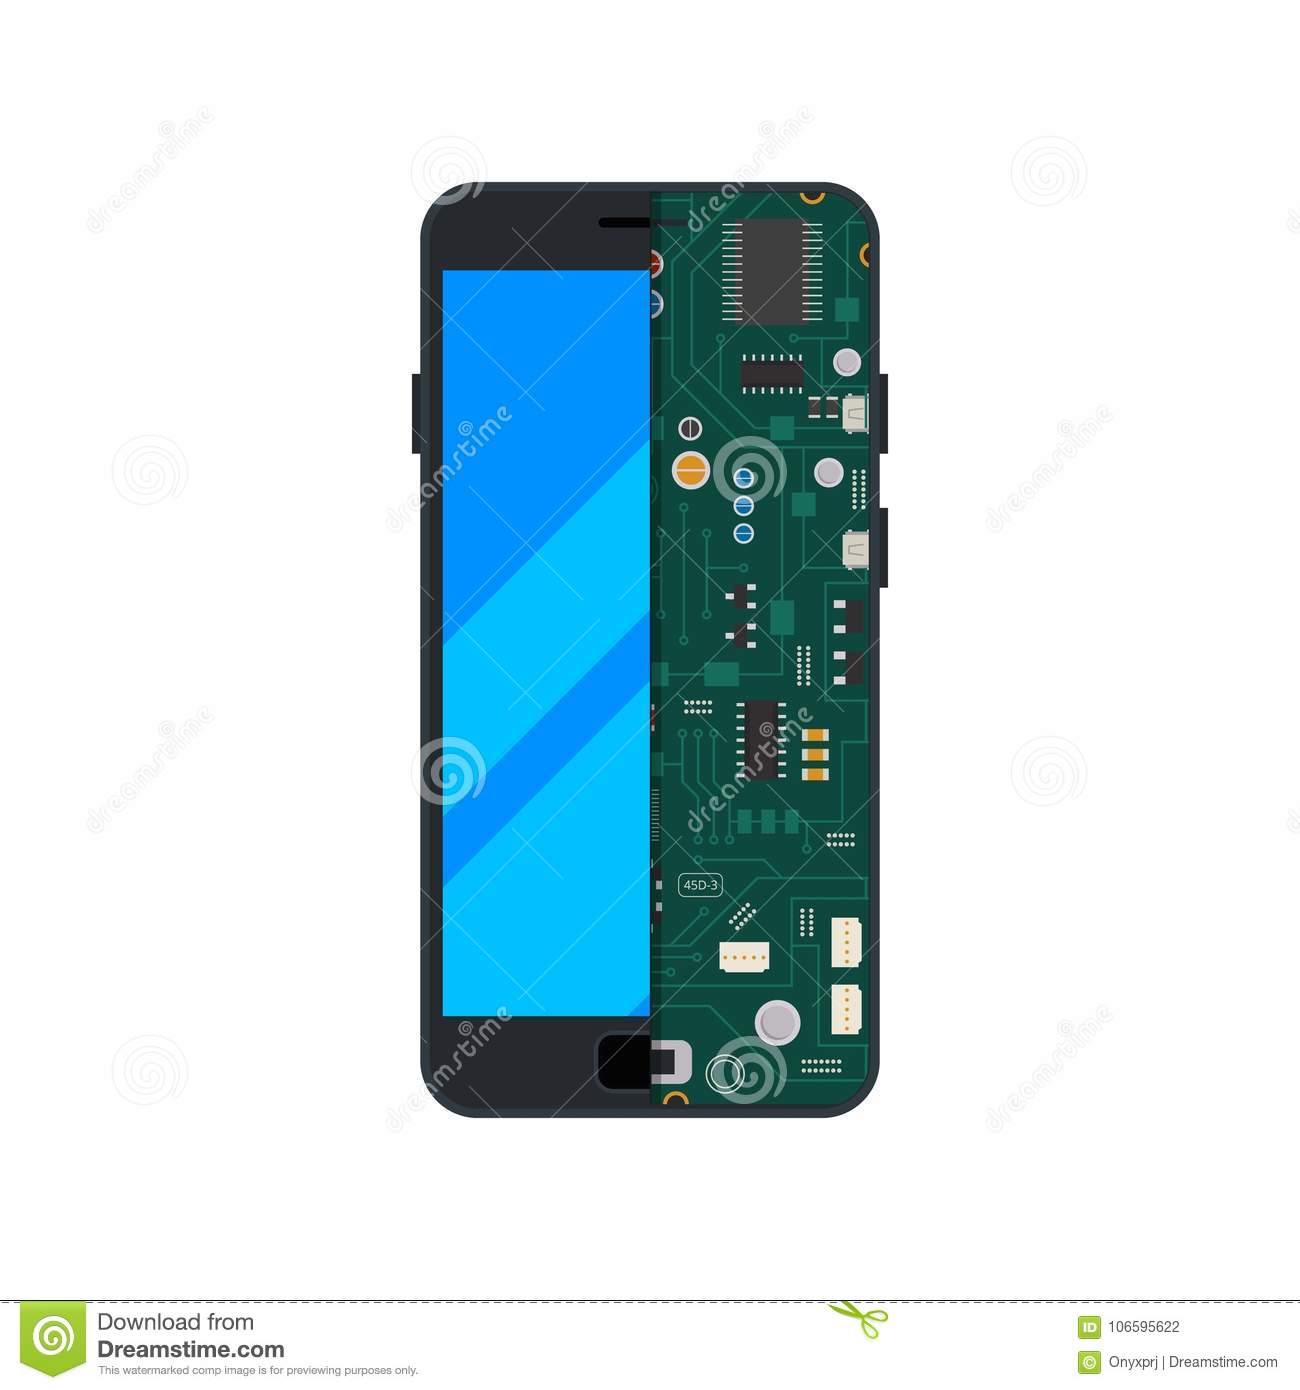 Illustration of electronic circuit of mobile phone or smartphone